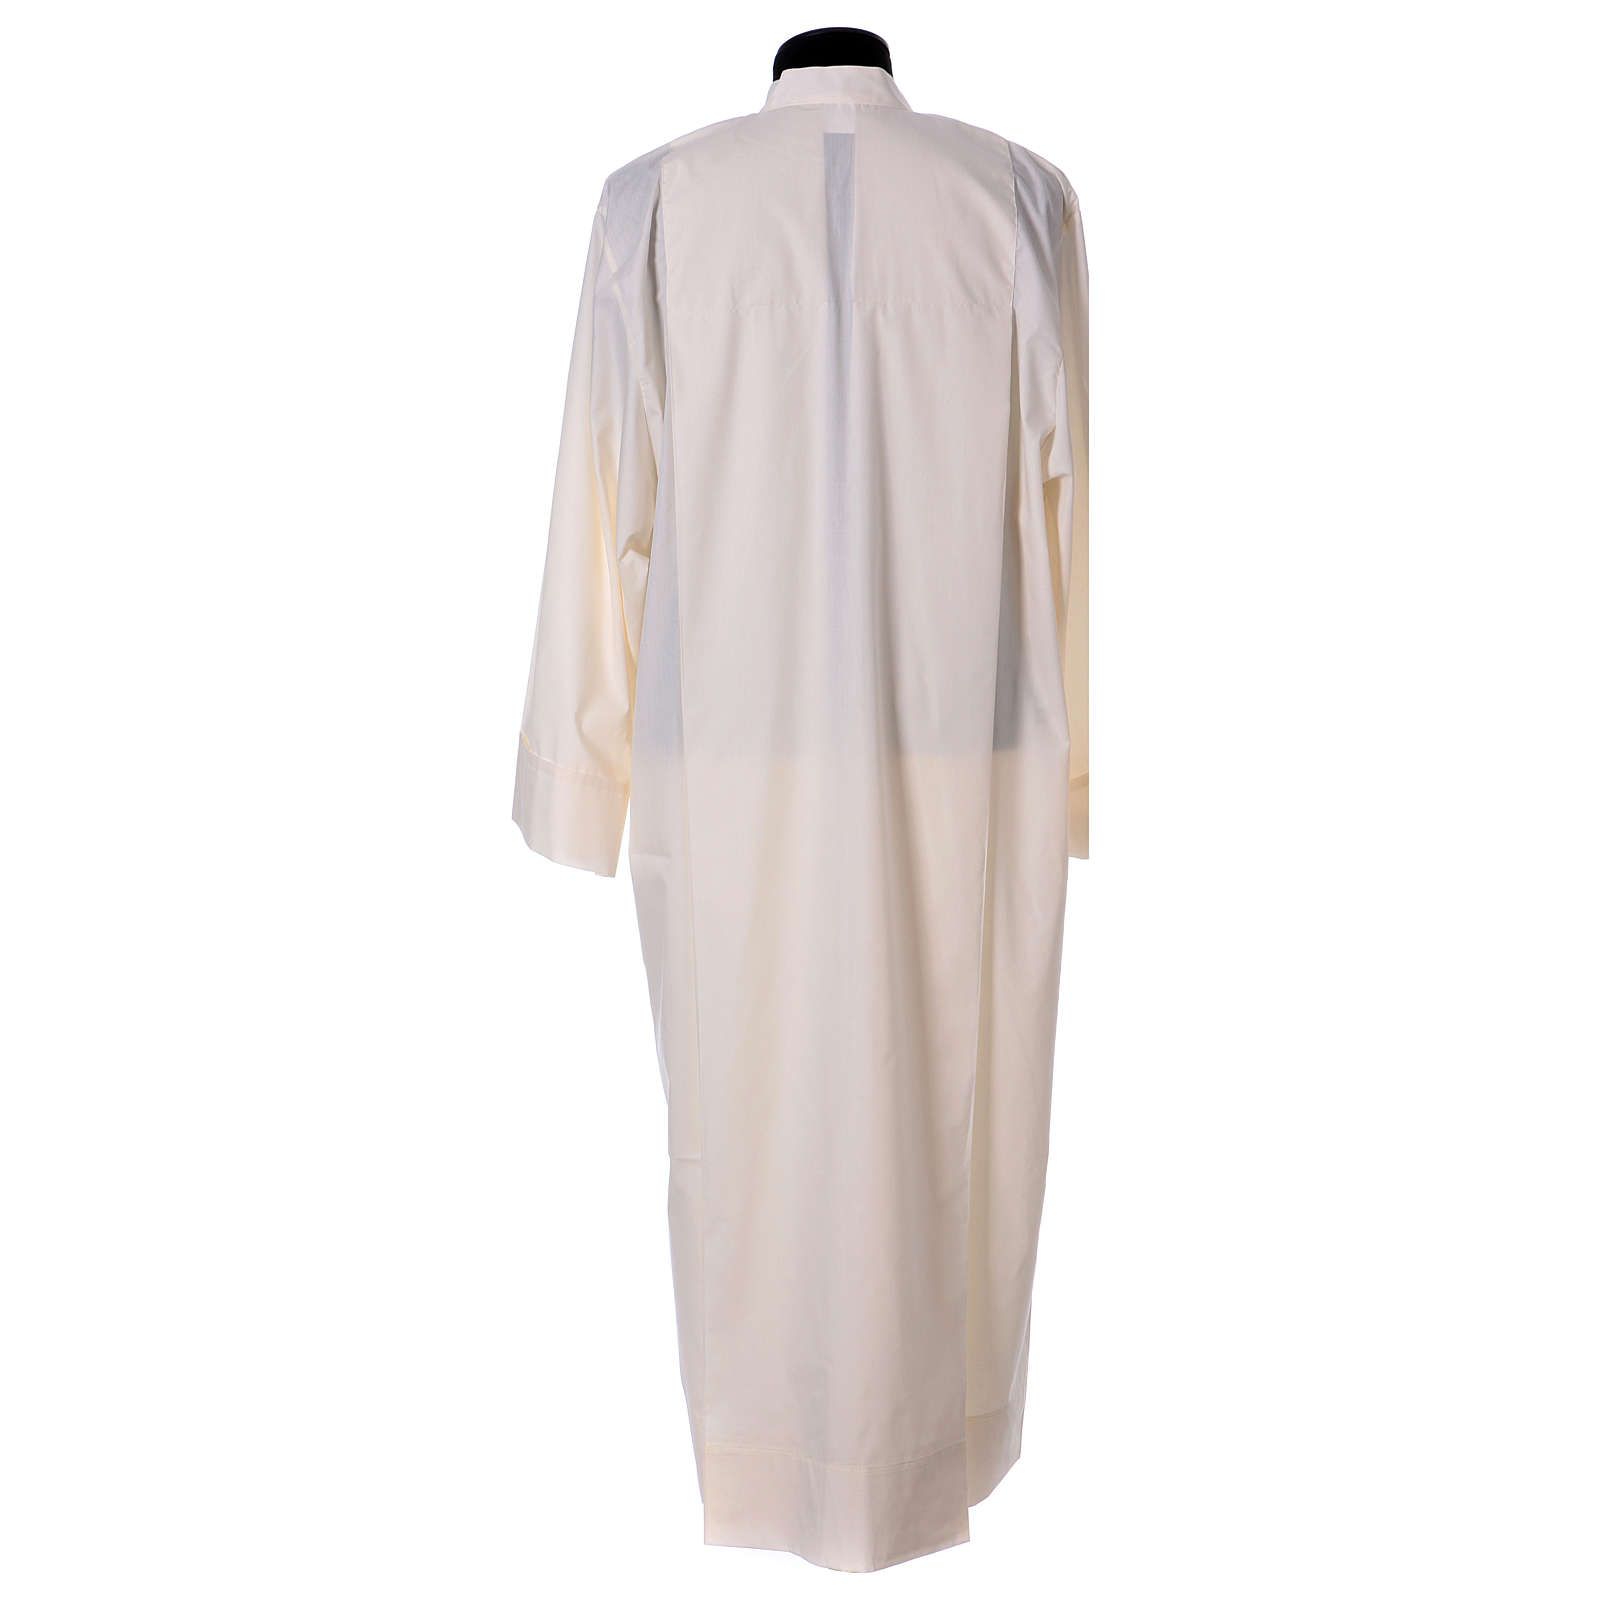 Priest Alb 65% polyester 35% cotton with 2 pleats and zipper on the front, ivory 4